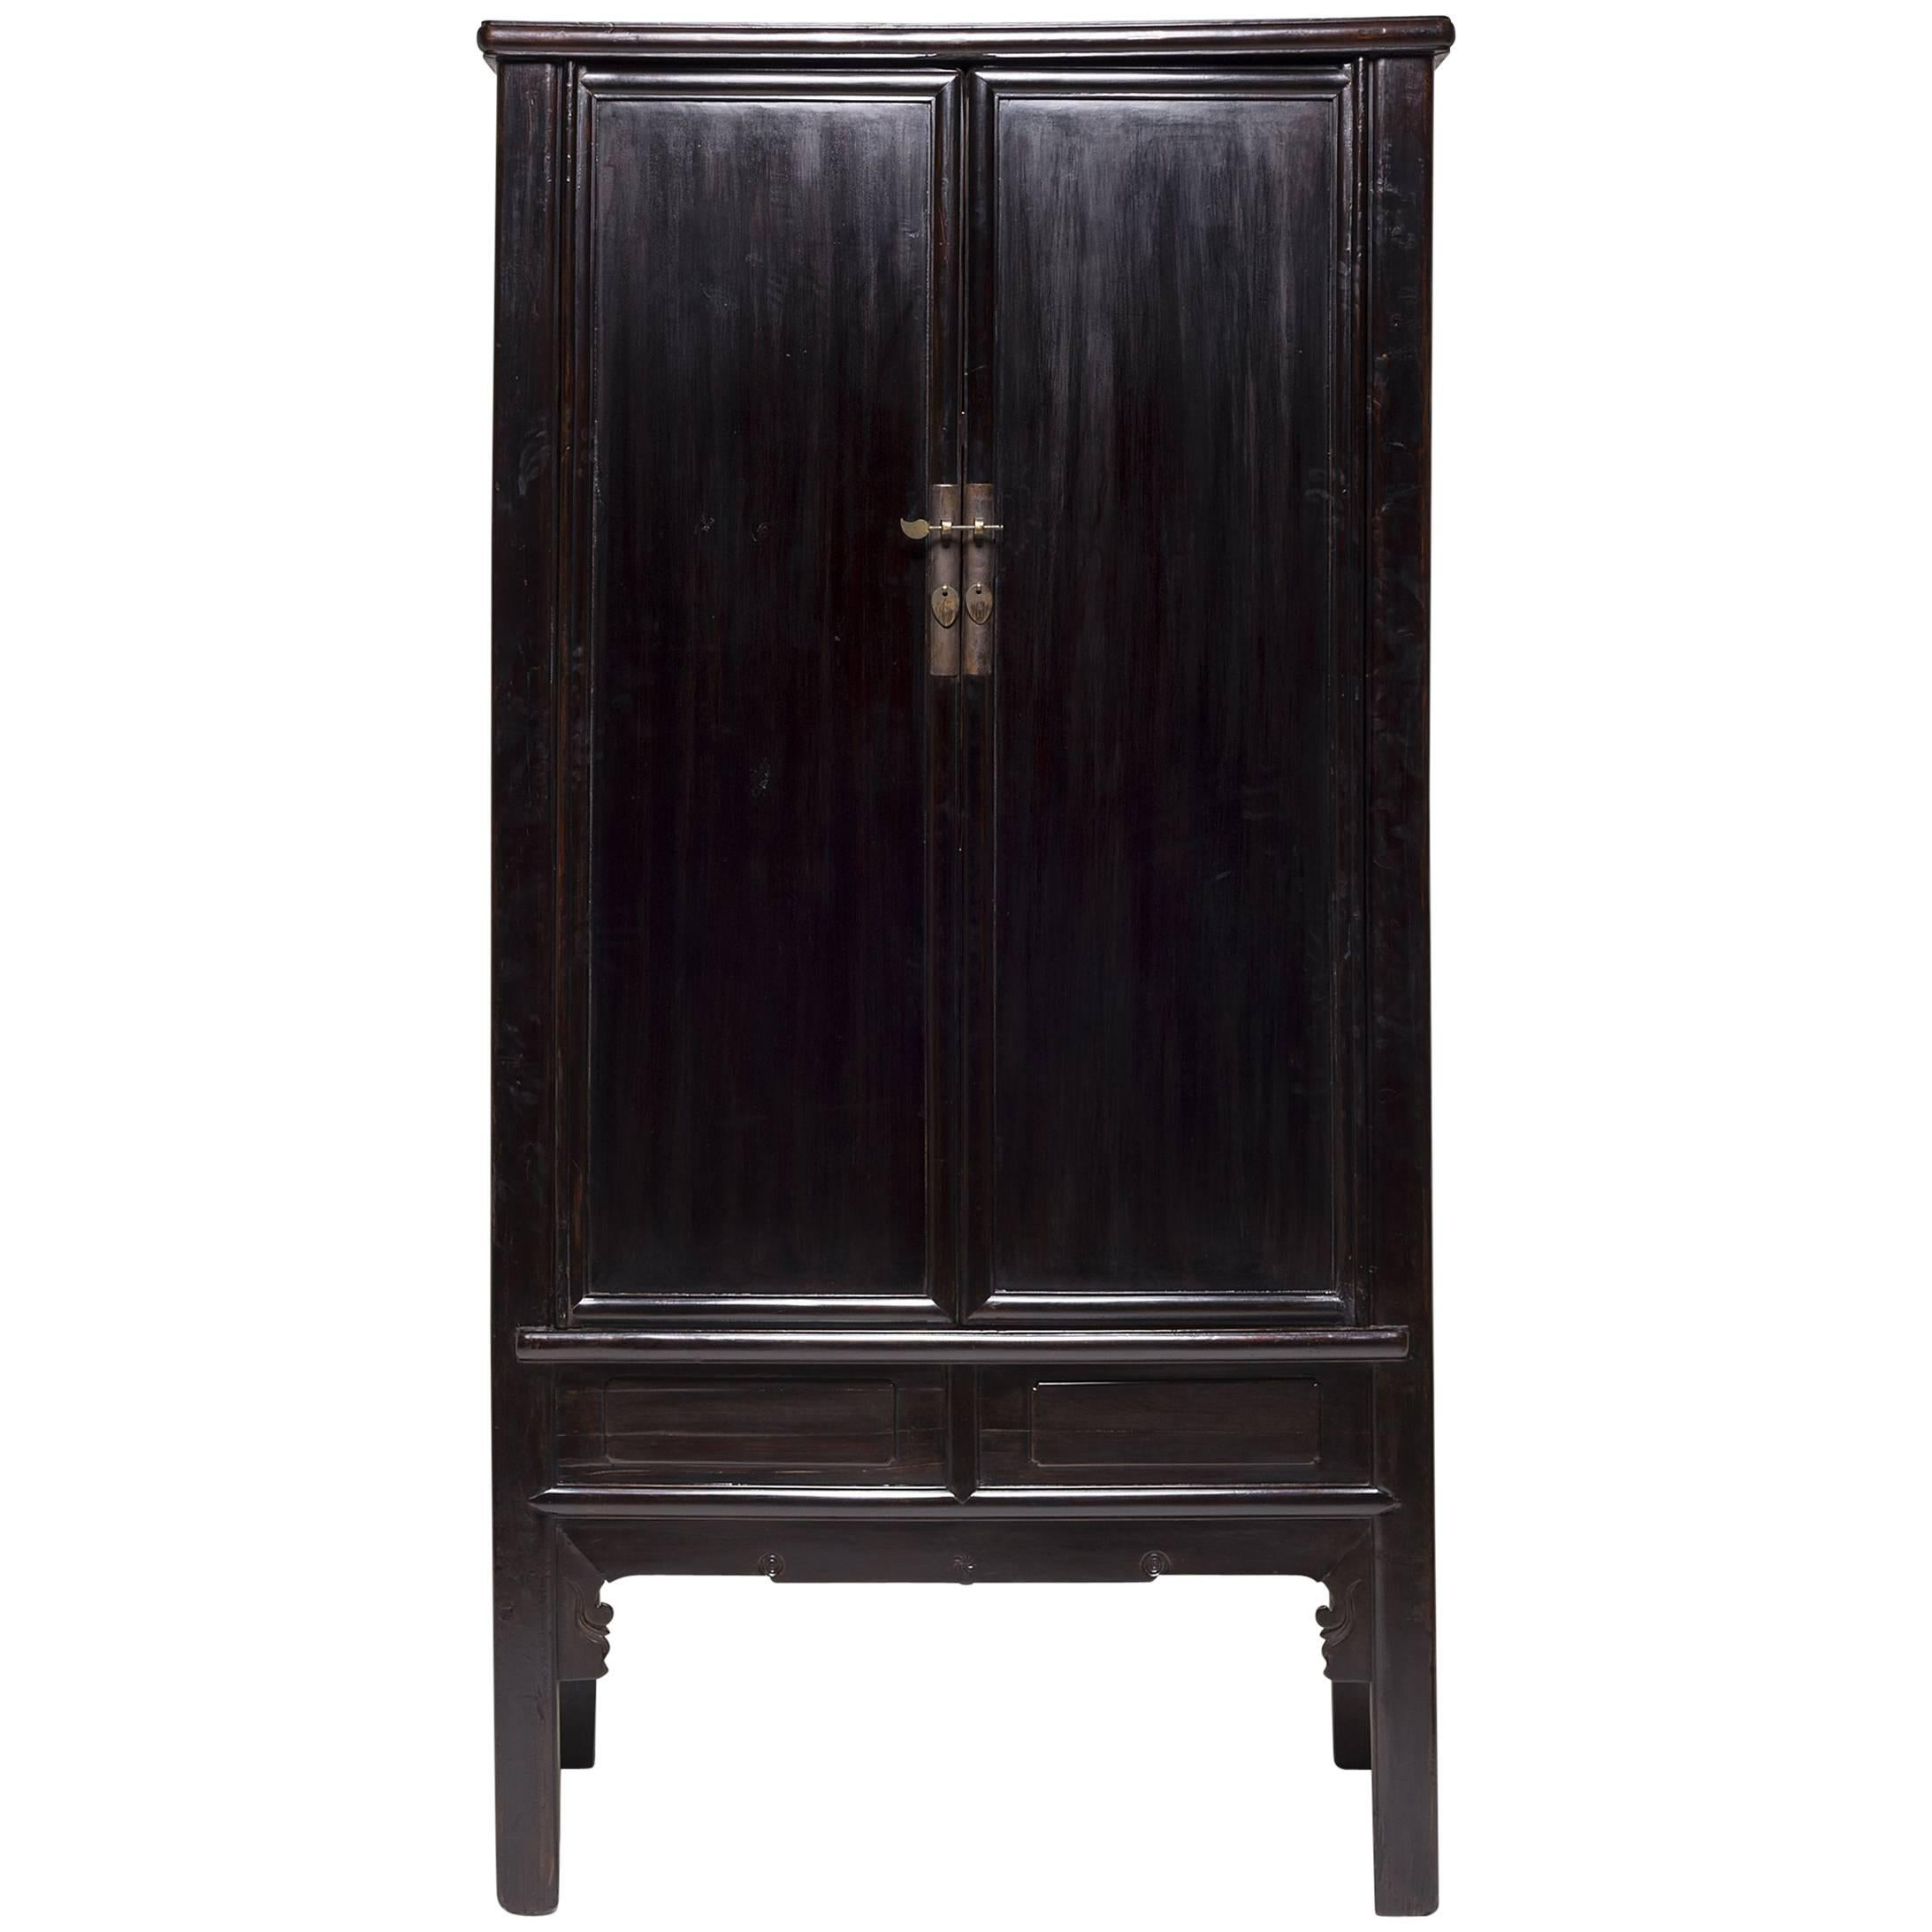 Chinese Black Lacquer Cabinet, c. 1850